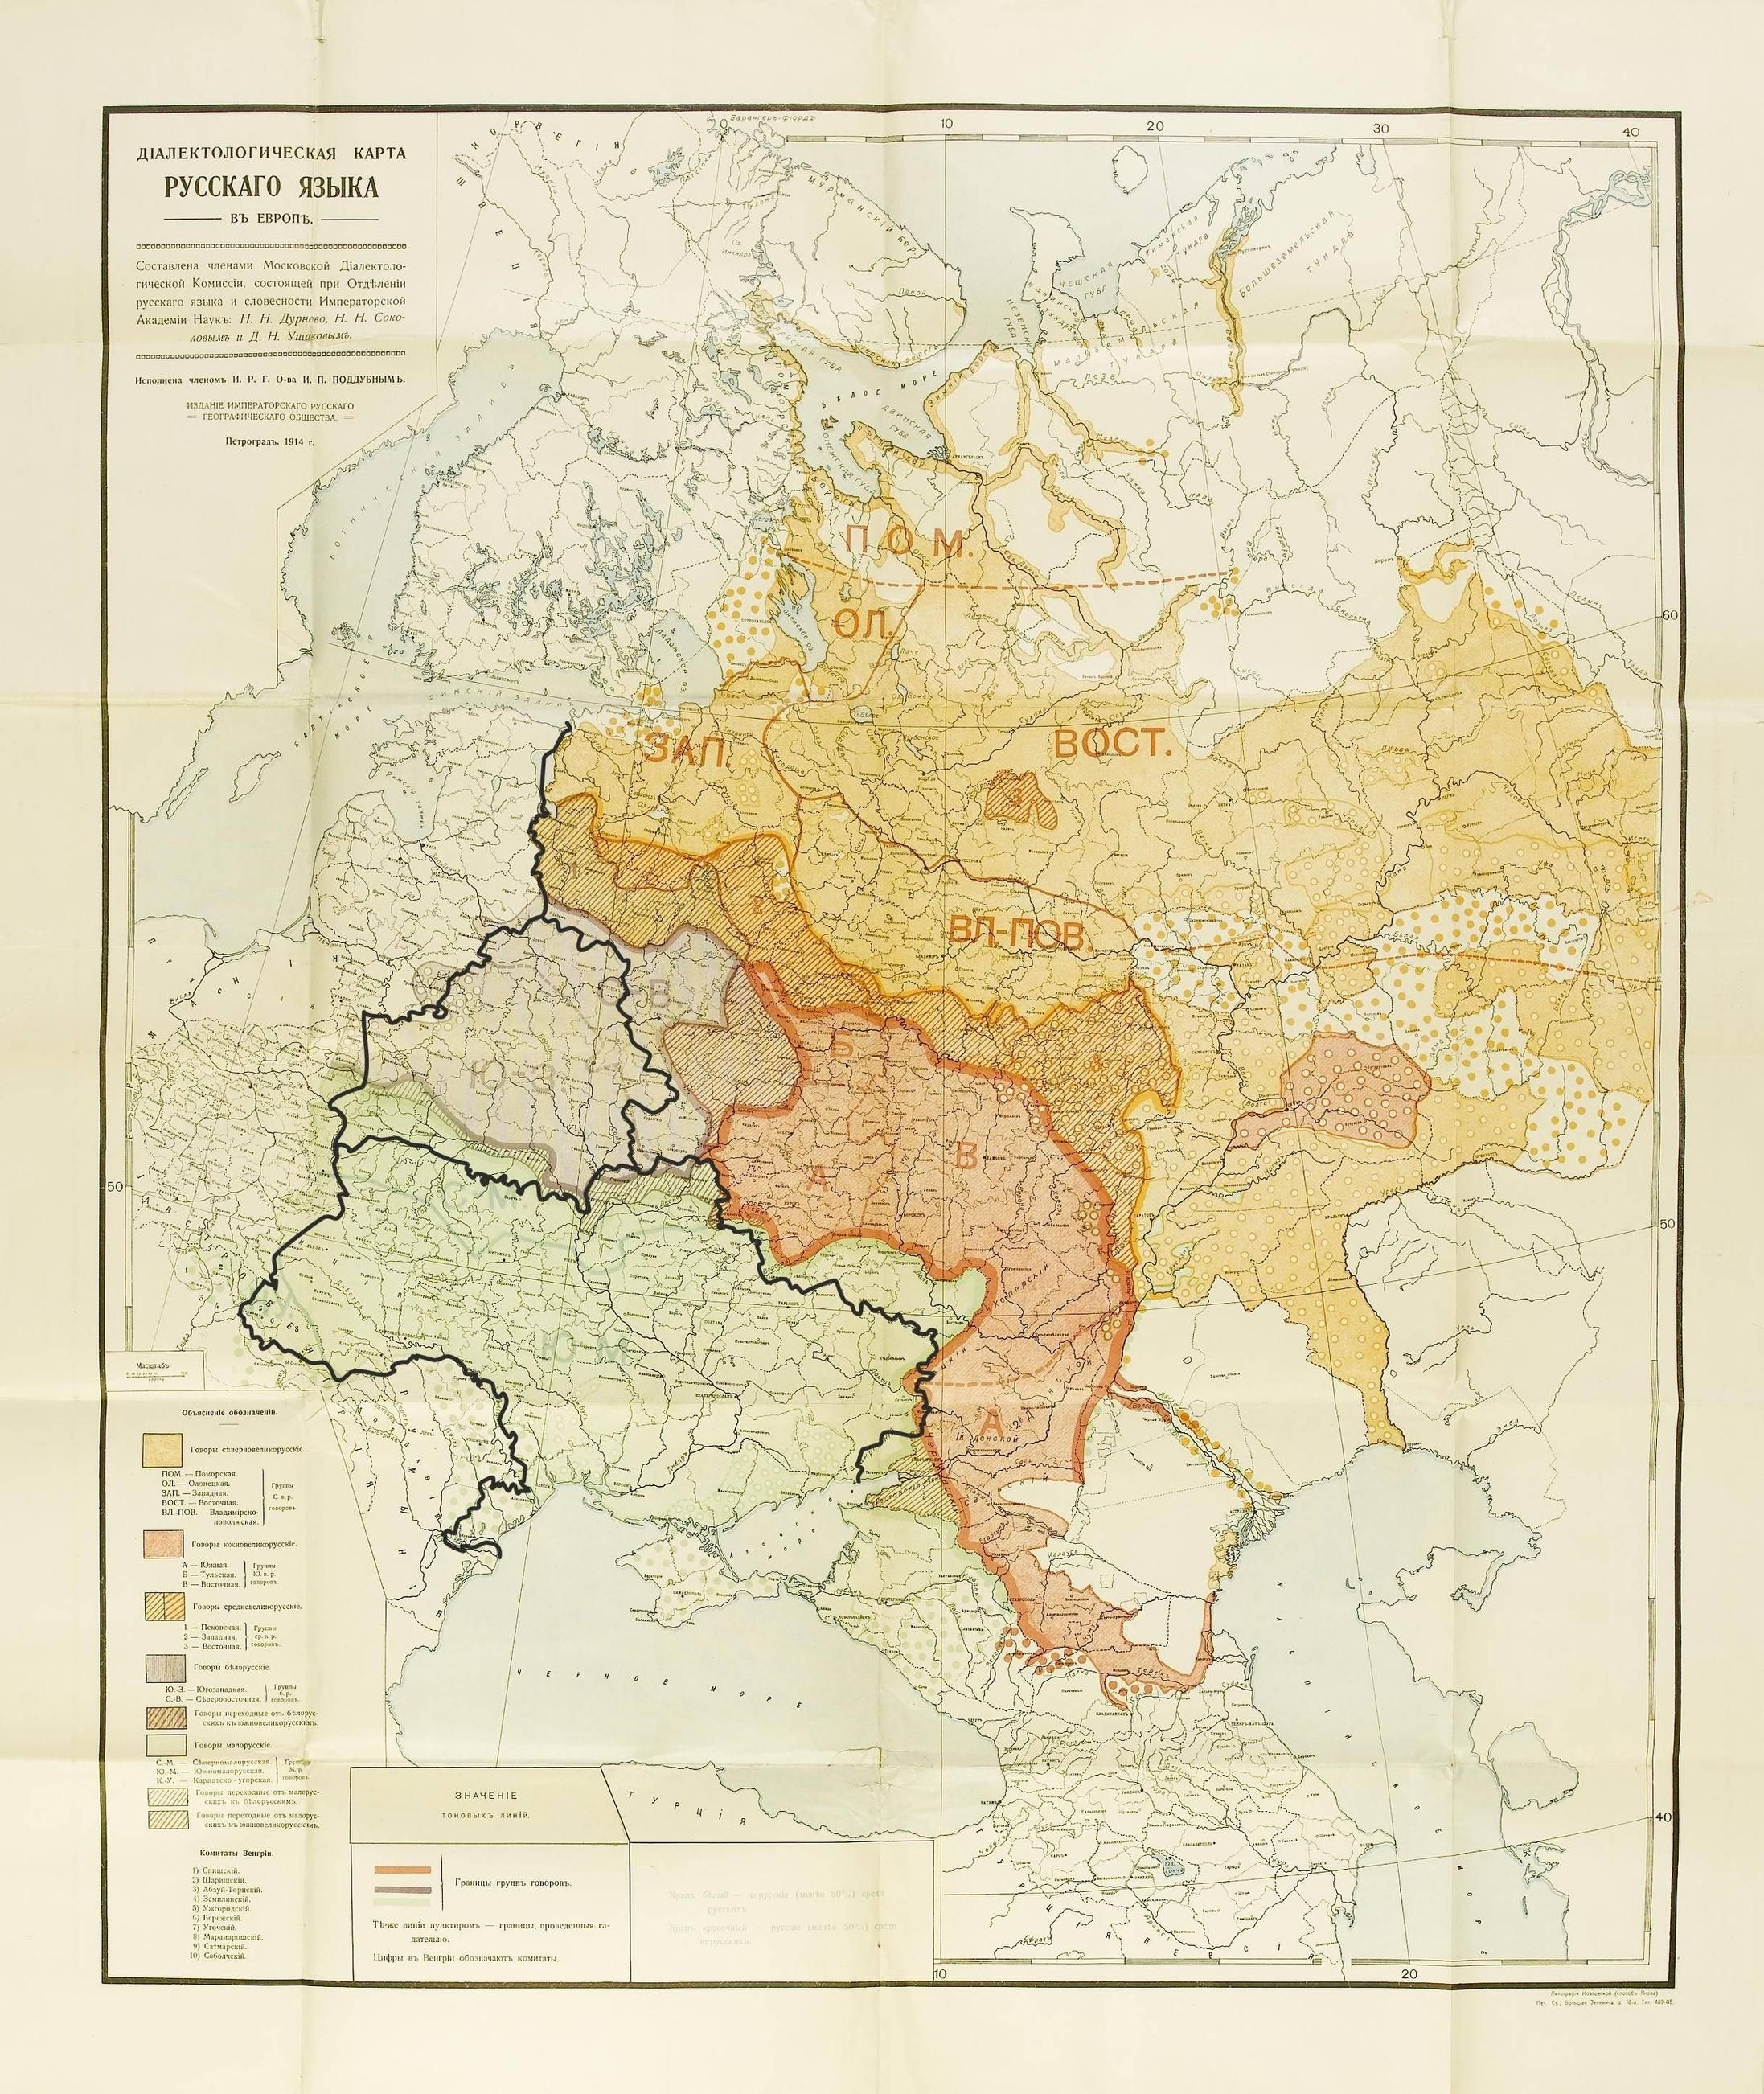 Linguistic map of Russian languages from 1914 with some 2014